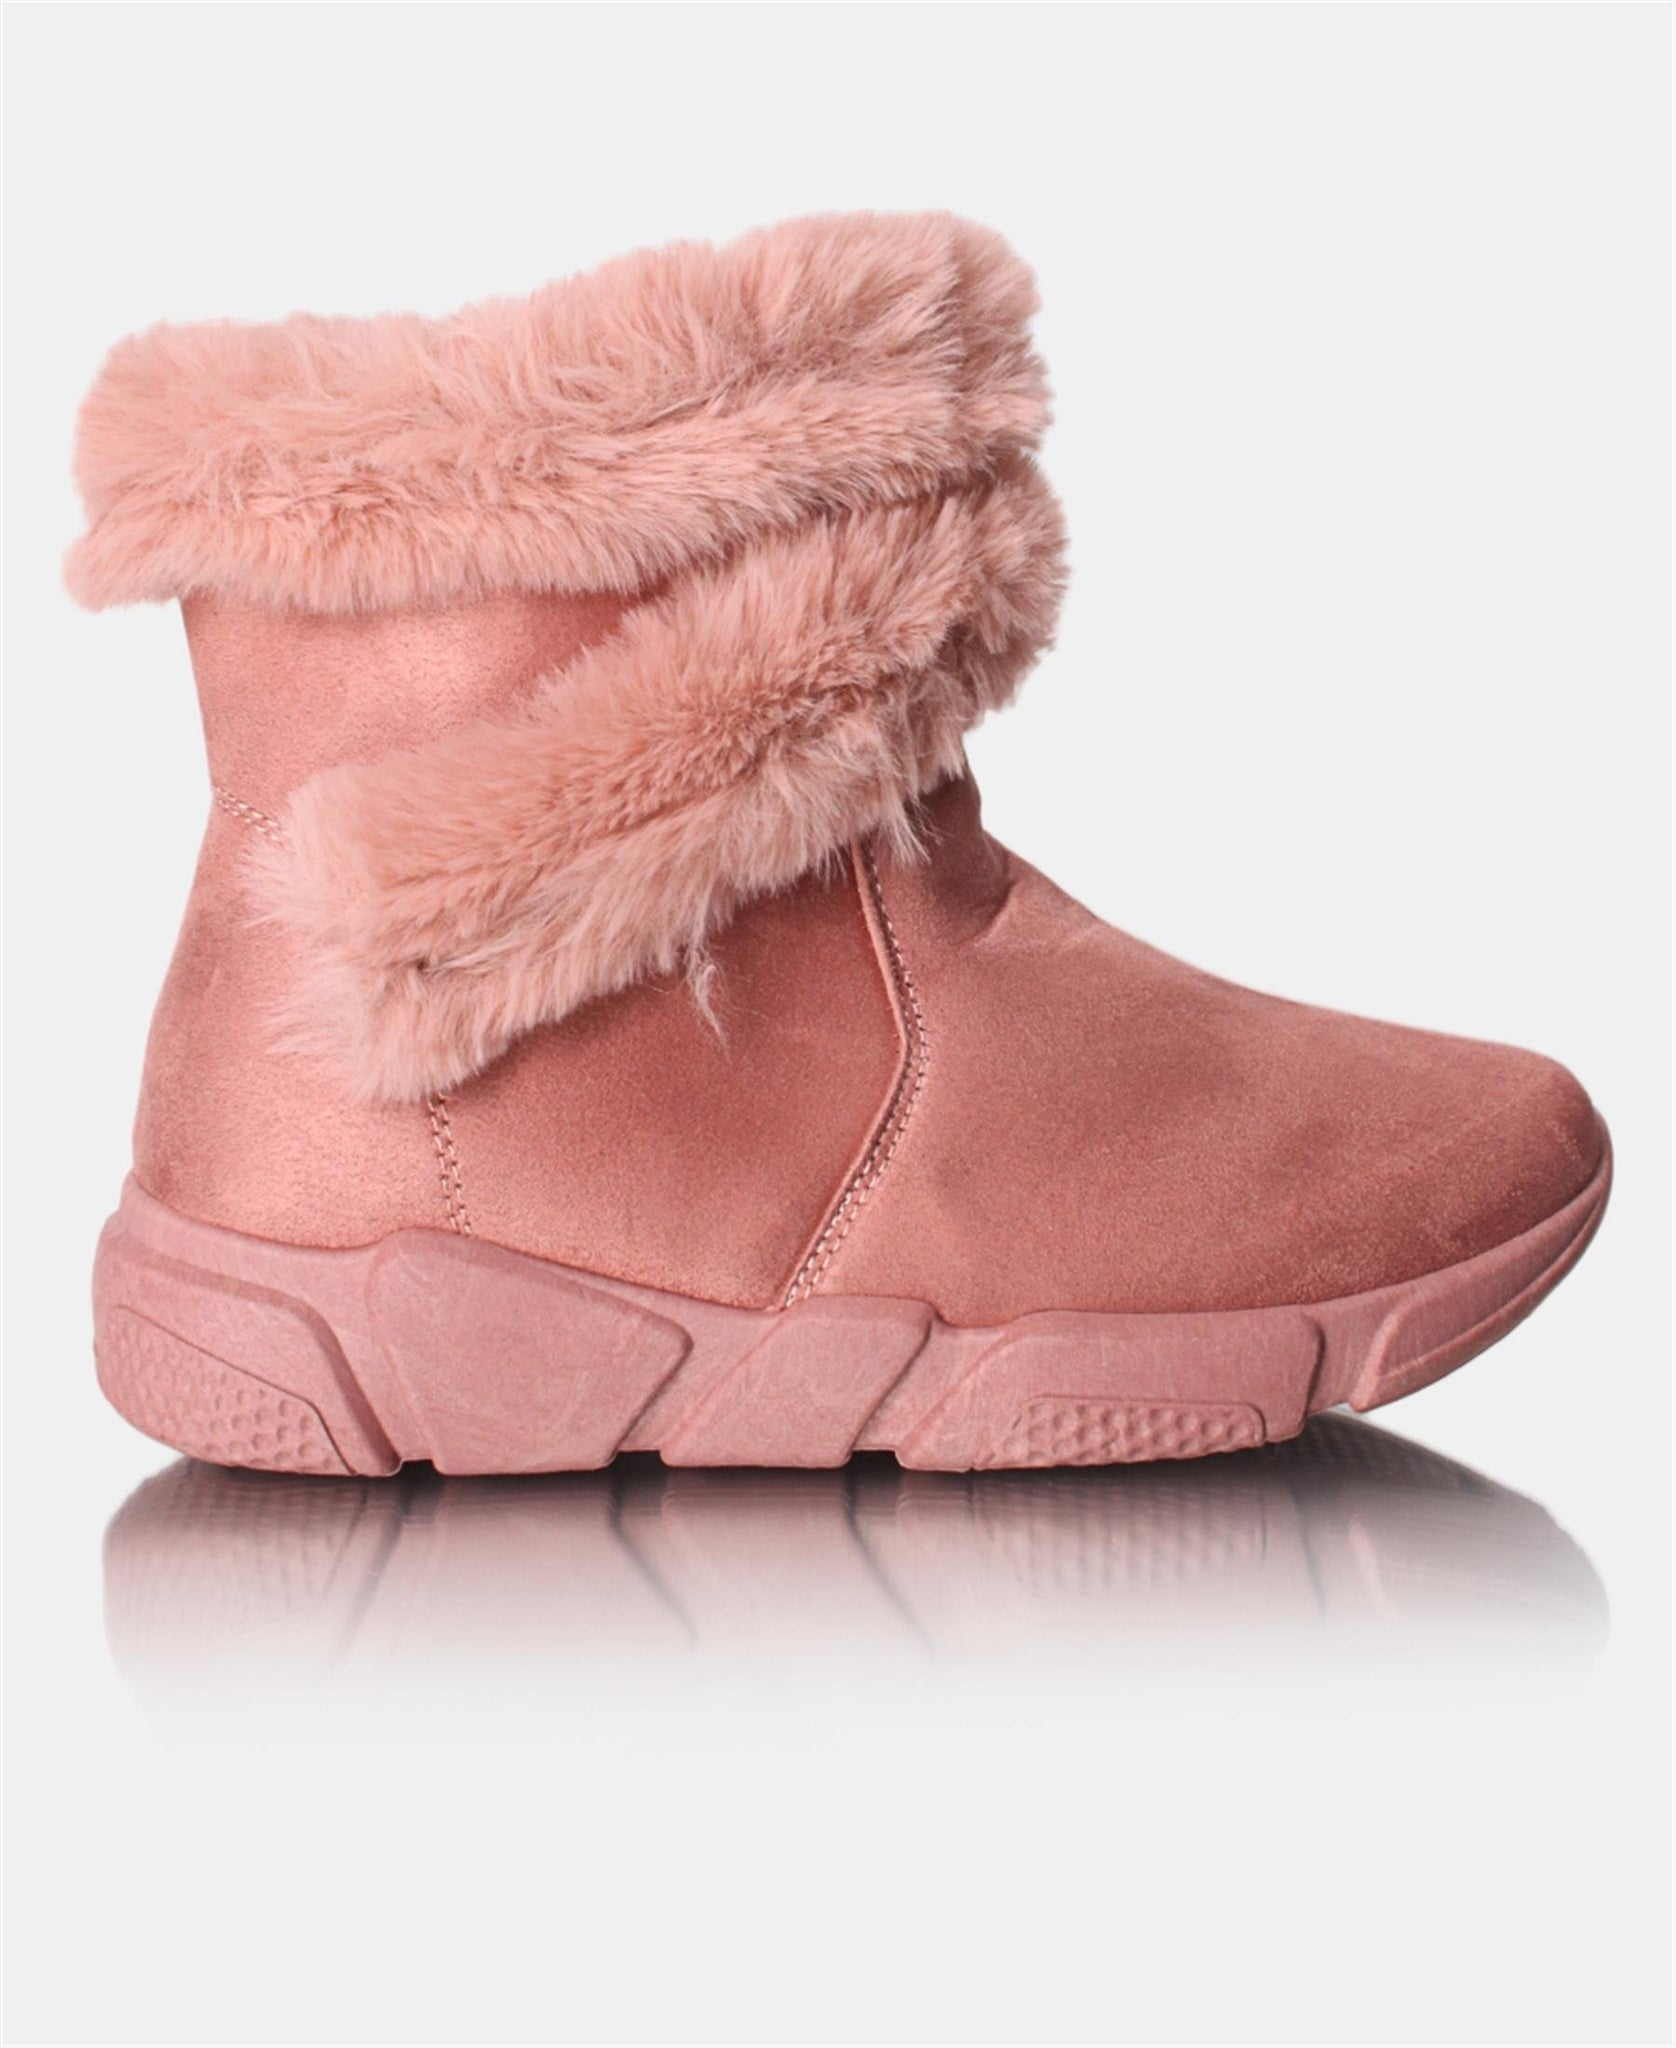 Ladies' Fur Boots - Mink